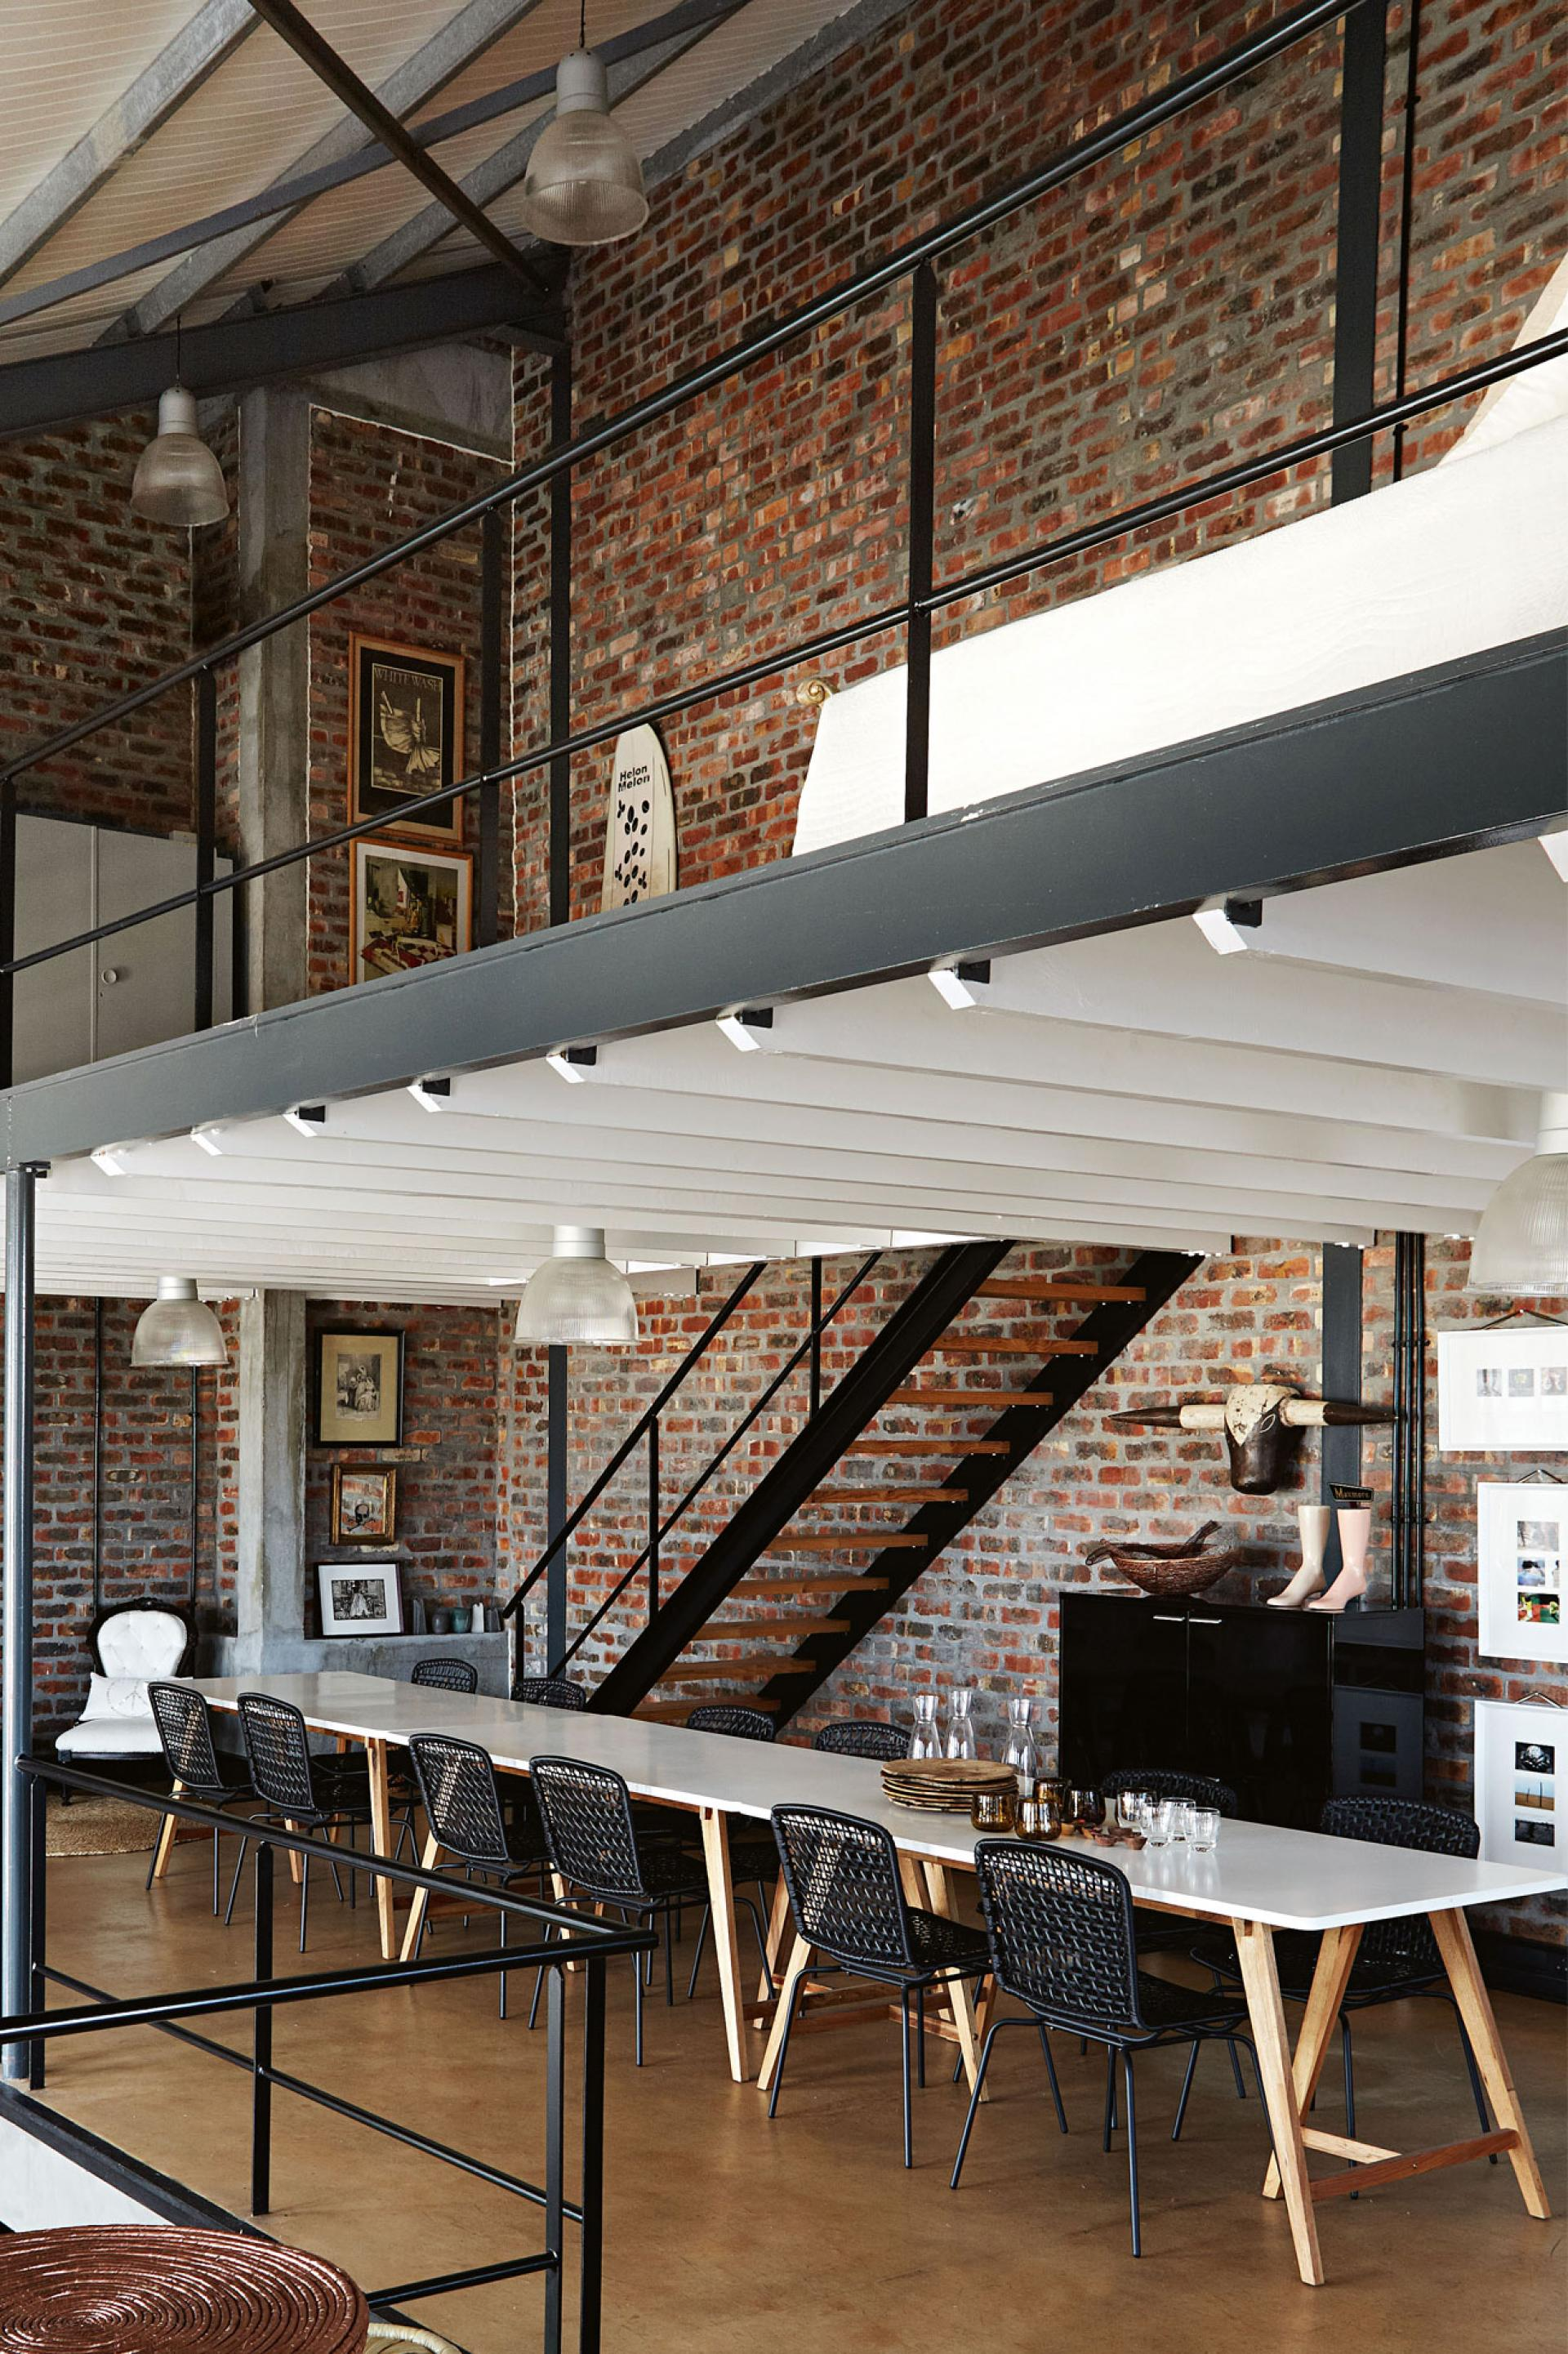 industrial-home-exposed-brick-20151111170013-q75_dx1920y-u1r1g0.jpg